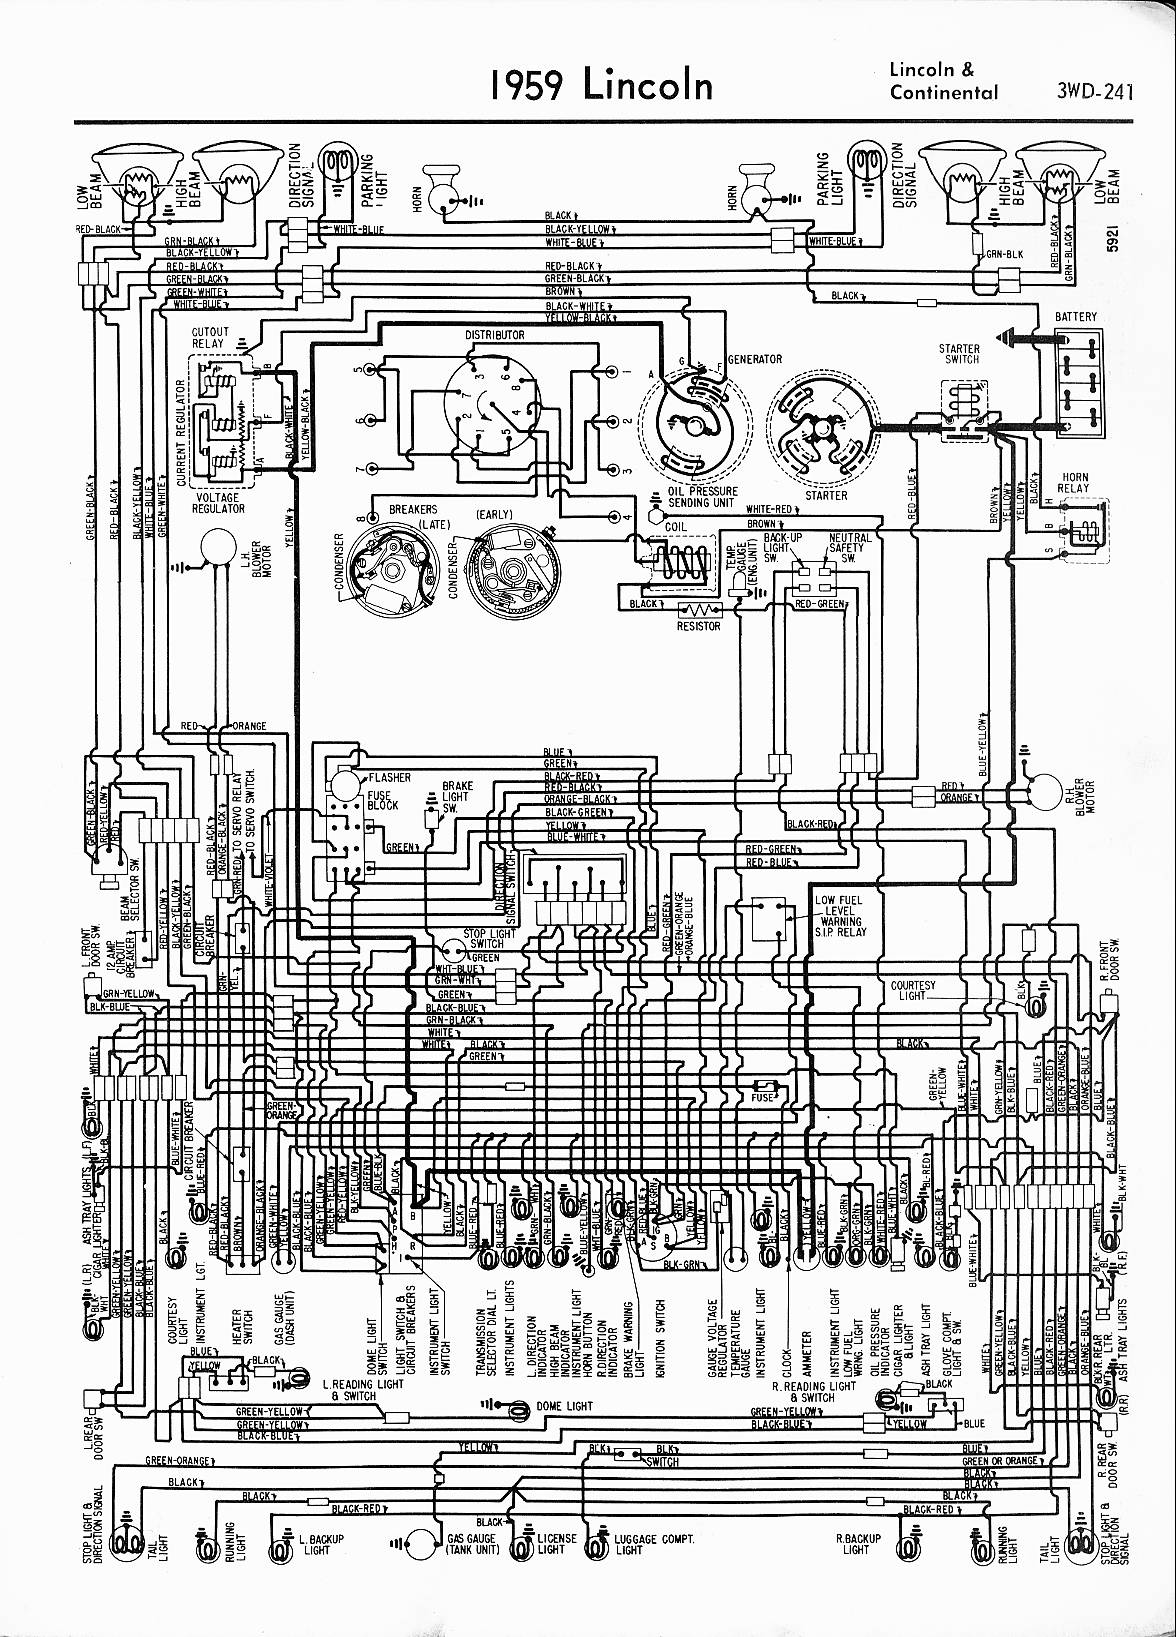 1965 Jeep Cj Wiring Diagram Data Early Cj5 For 57 House Symbols U2022 Rh Maxturner Co 1980 Cj7 Commander